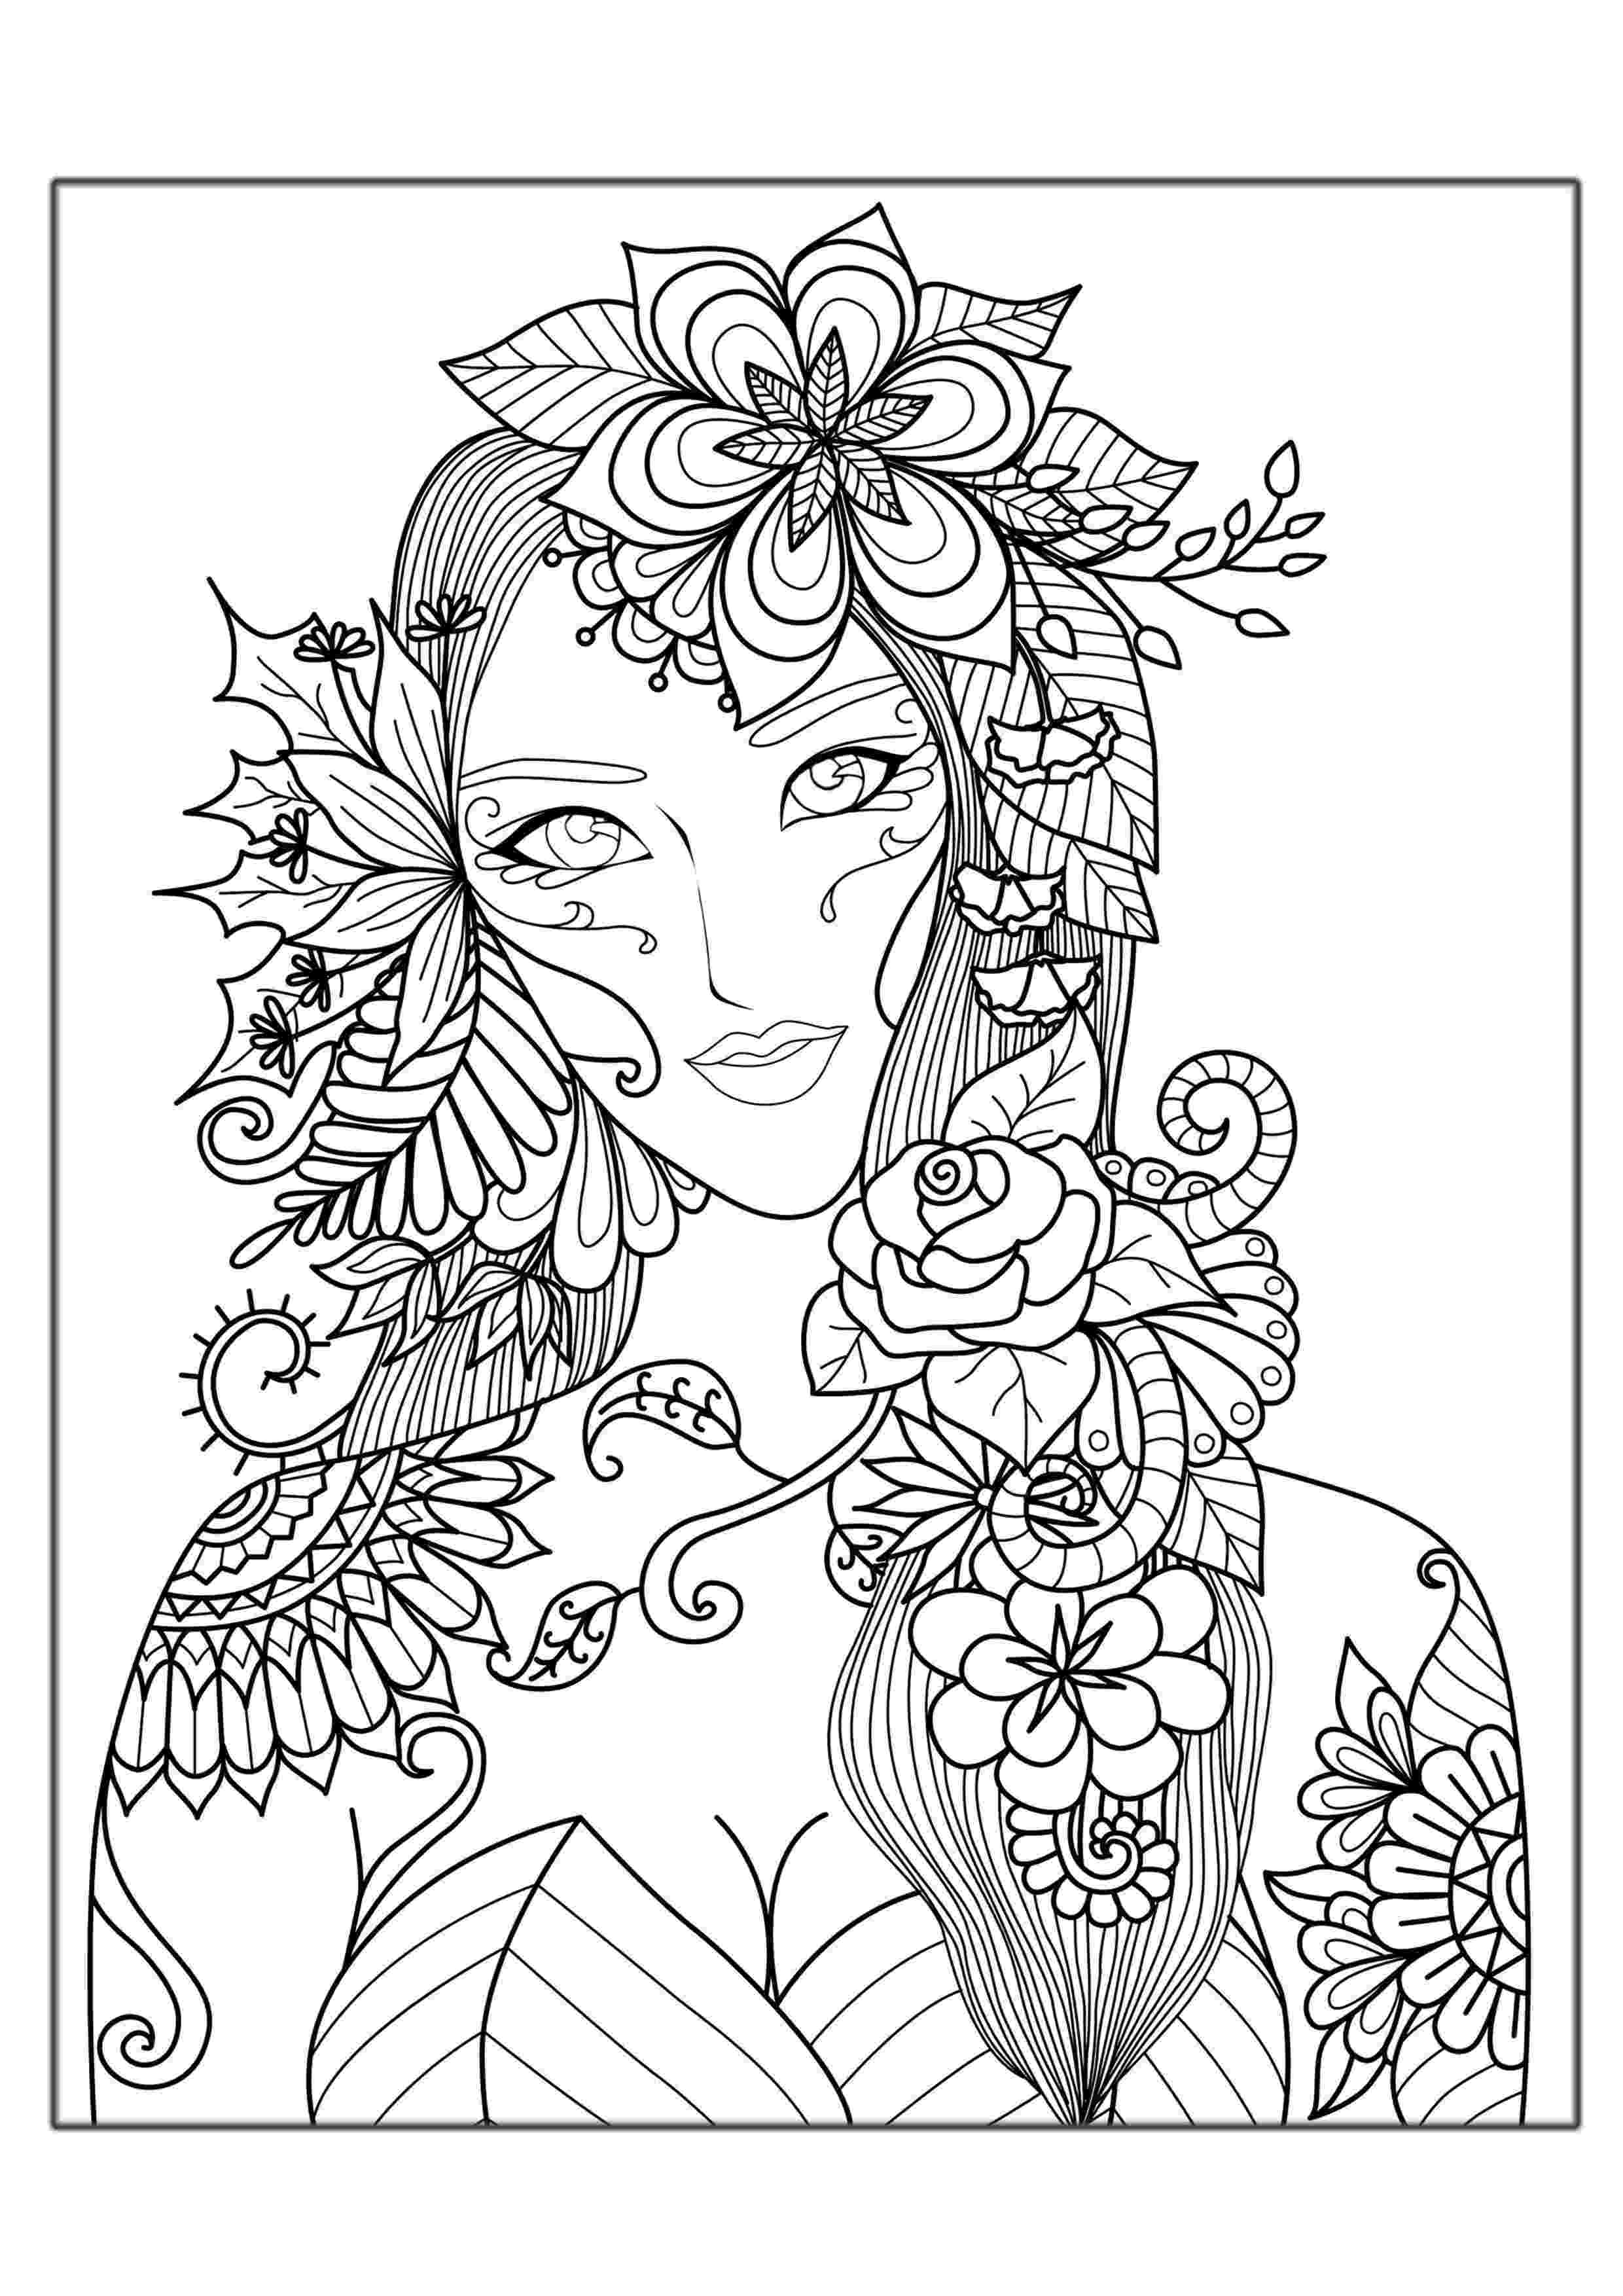 free printable flower coloring pages for adults woman flowers anti stress adult coloring pages flower printable for free adults pages coloring